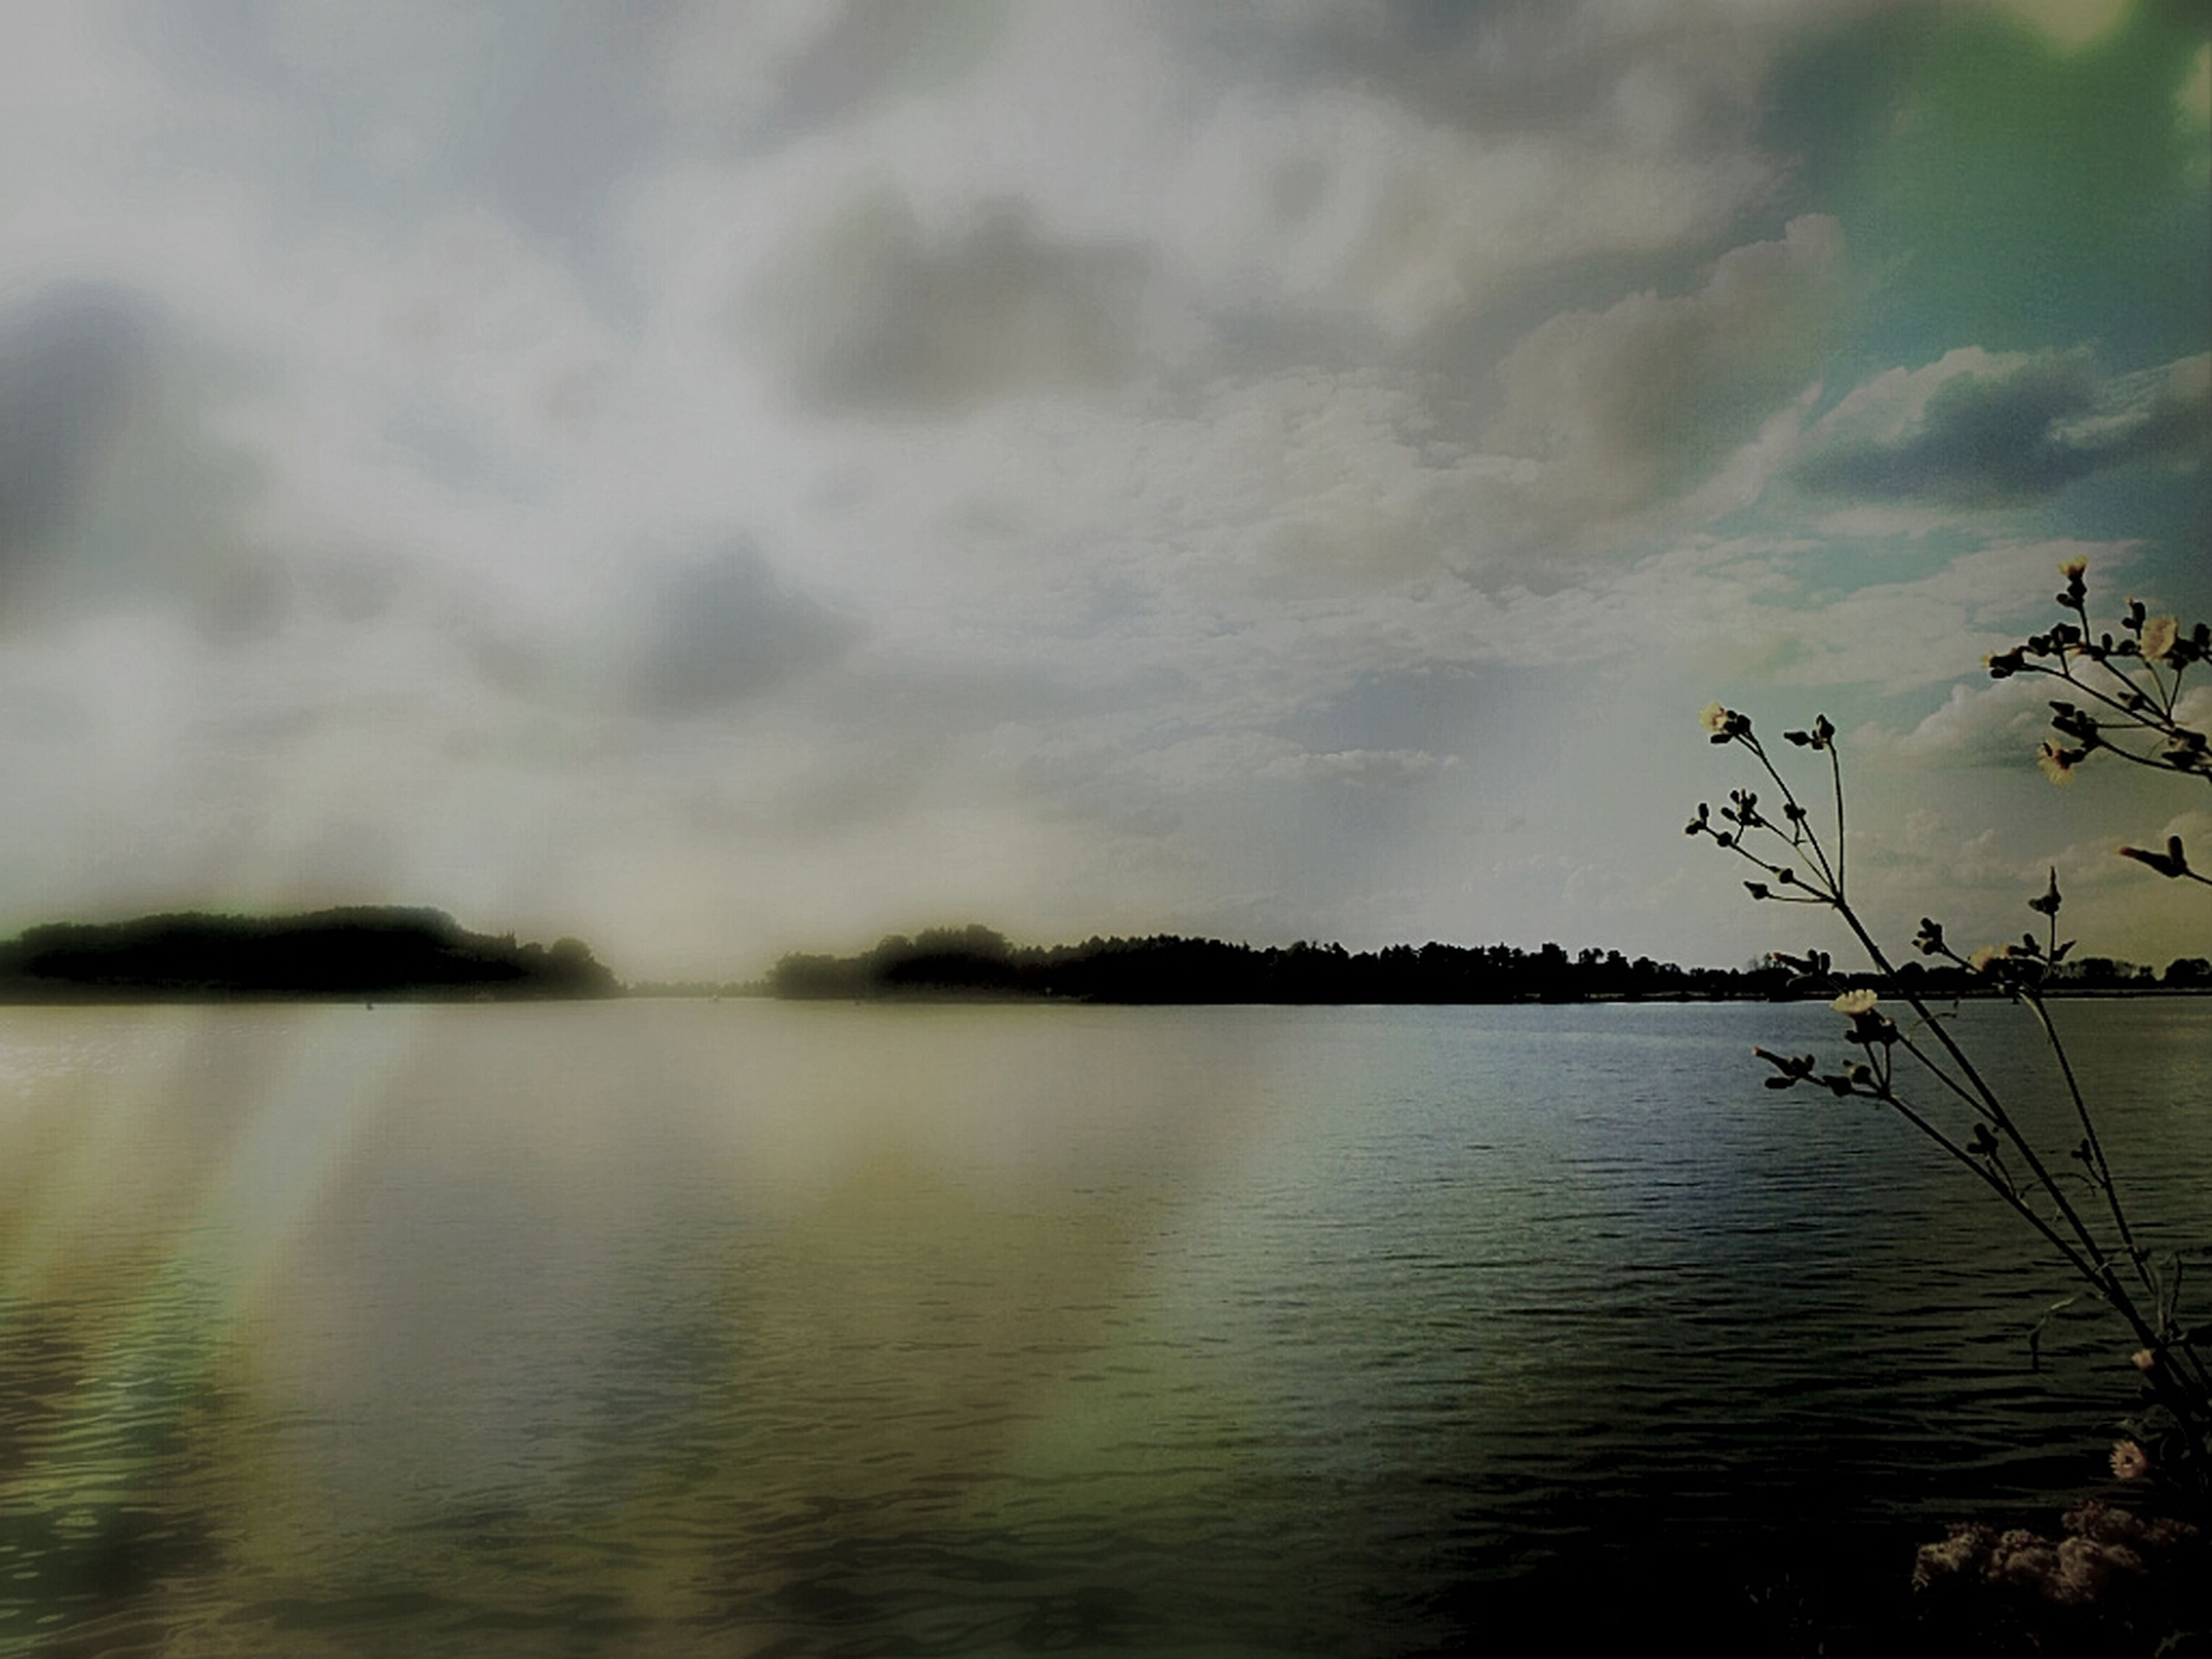 water, tranquility, tranquil scene, sky, scenics, lake, beauty in nature, nature, waterfront, cloud - sky, reflection, idyllic, tree, cloudy, plant, cloud, growth, outdoors, calm, river